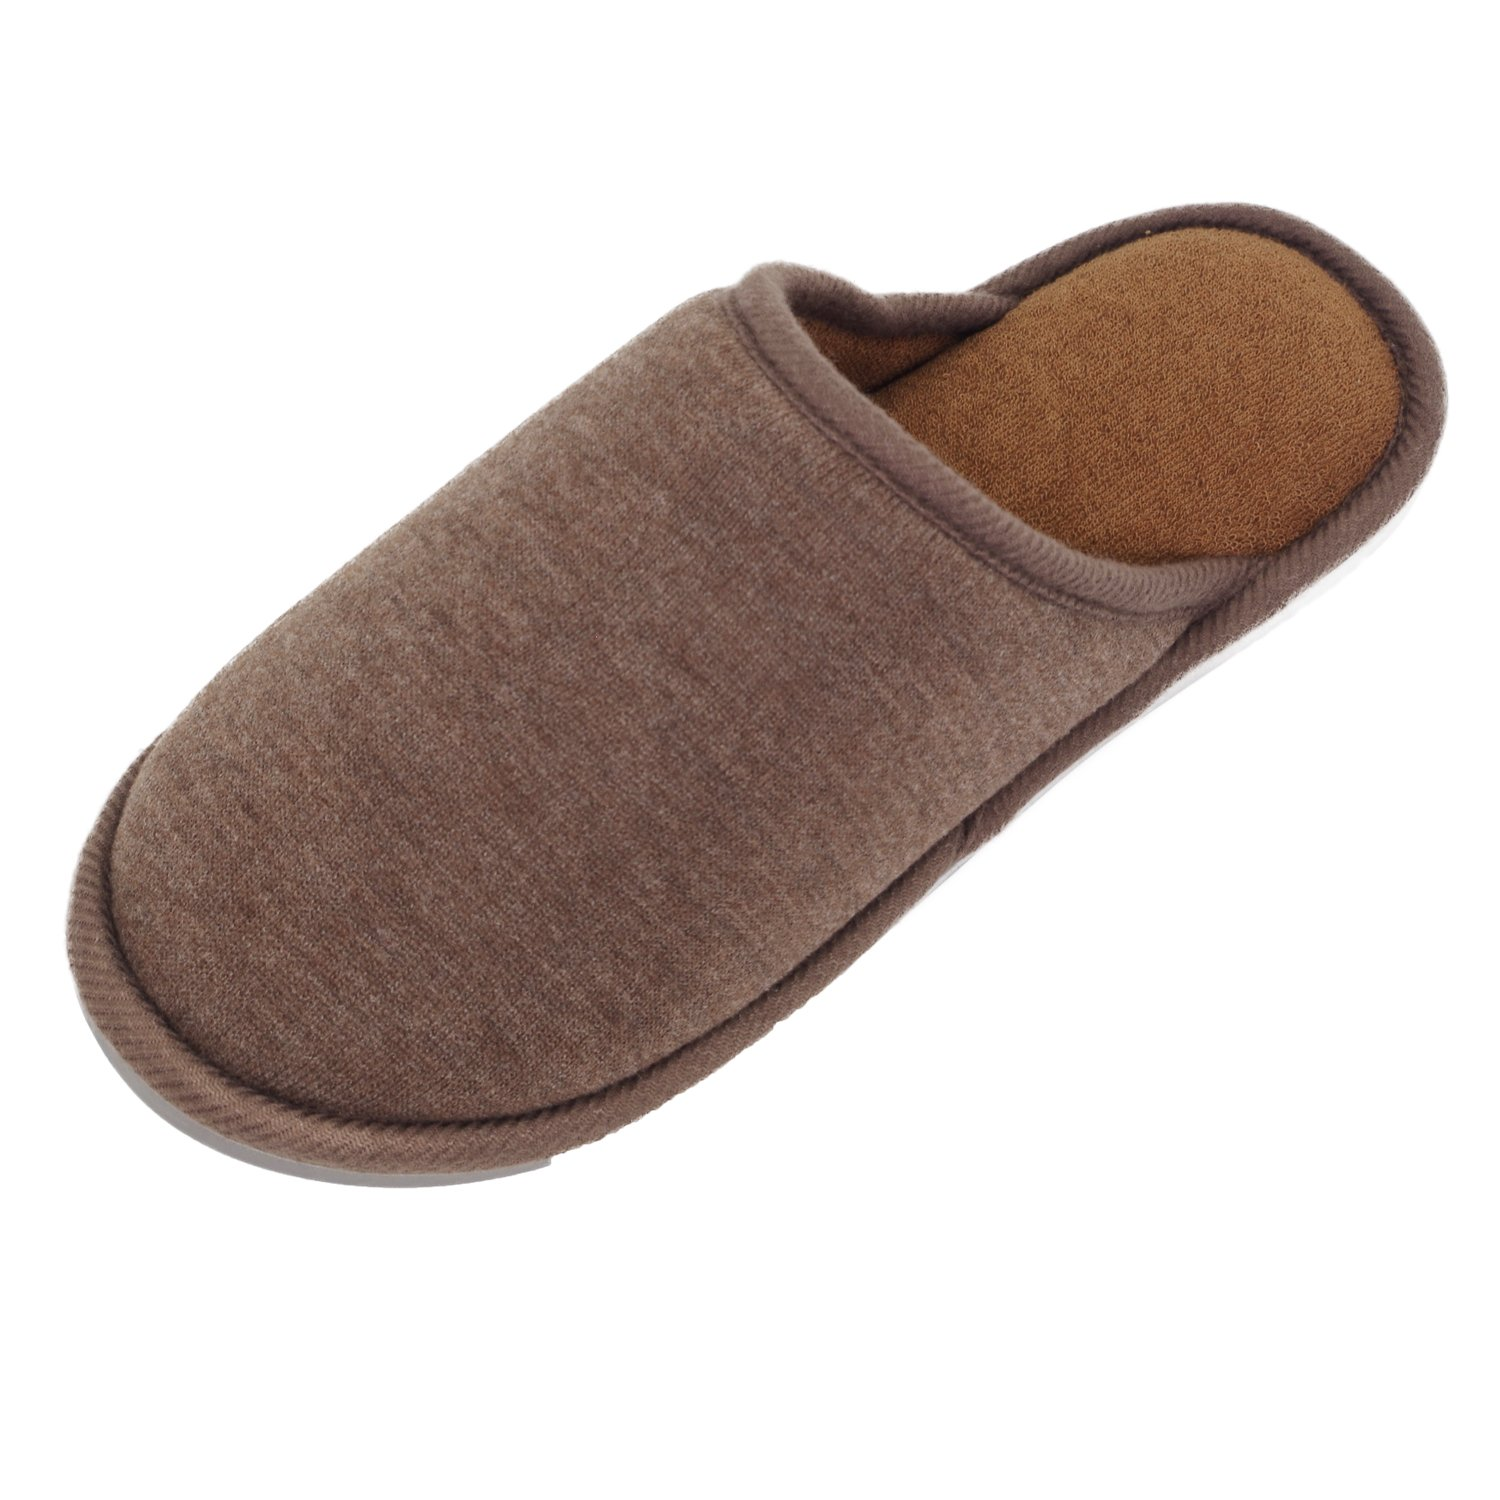 Moodeng House Slippers Memory Foam For Women Men Anti-Skid Indoor Slide Shoes Washable Lightweight Ladies Home Slipper (US 7-8.5 -Men, Brown) by Moodeng (Image #3)